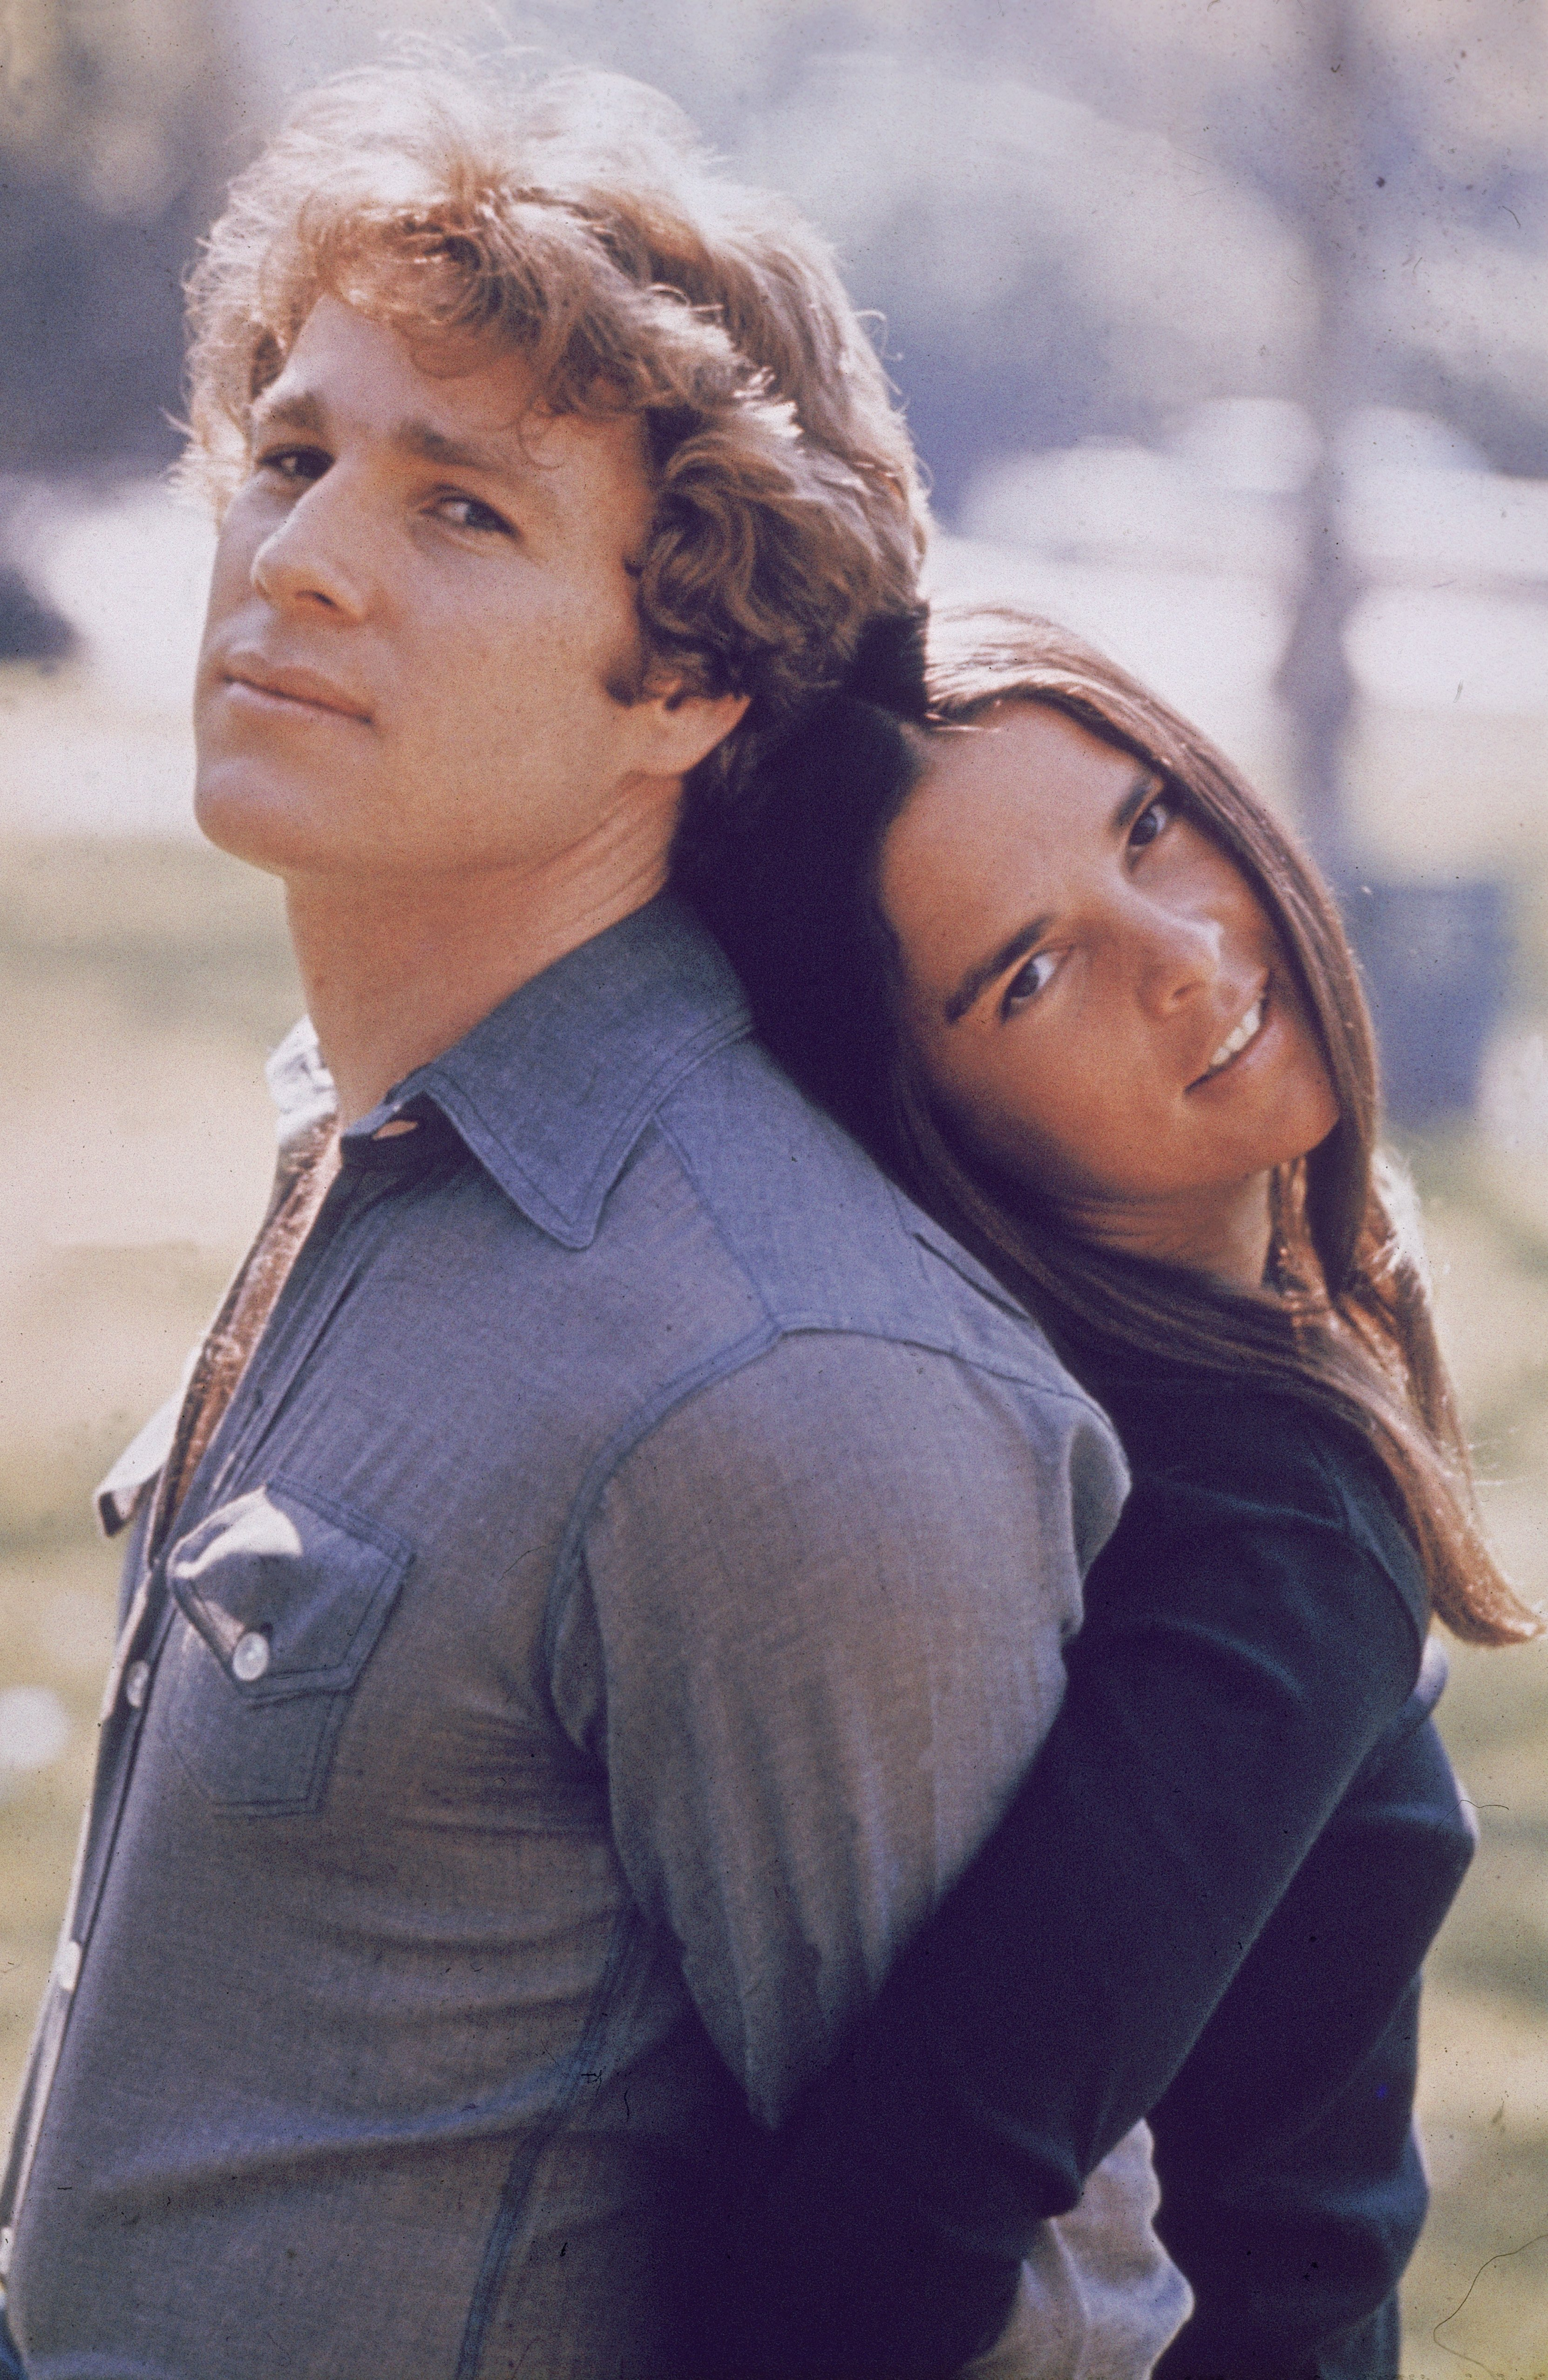 Ryan O'Neal and Ali MacGraw stand back to back outdoors in a still from the film, 'Love Story,' 1970 | Photo: Getty Images